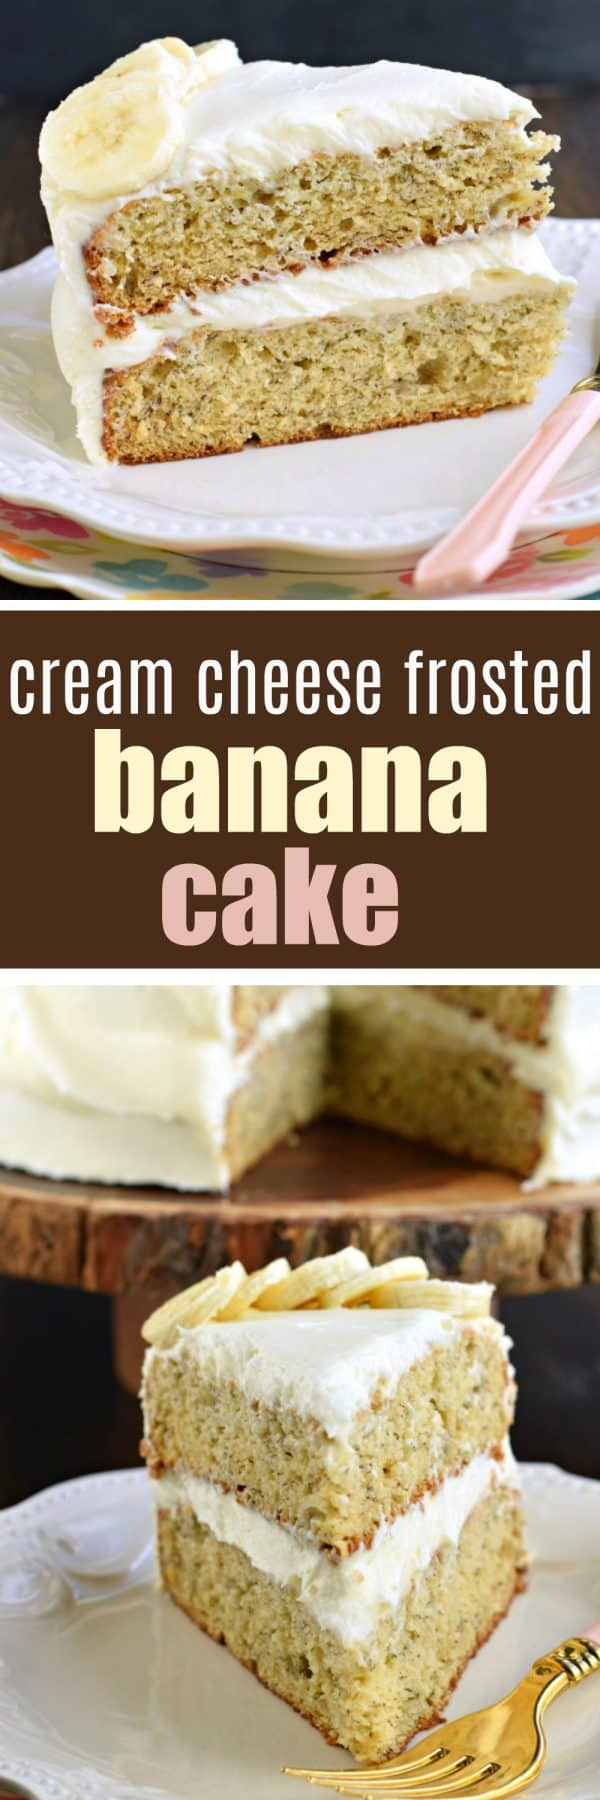 Cream Cheese Frosted Banana Cake